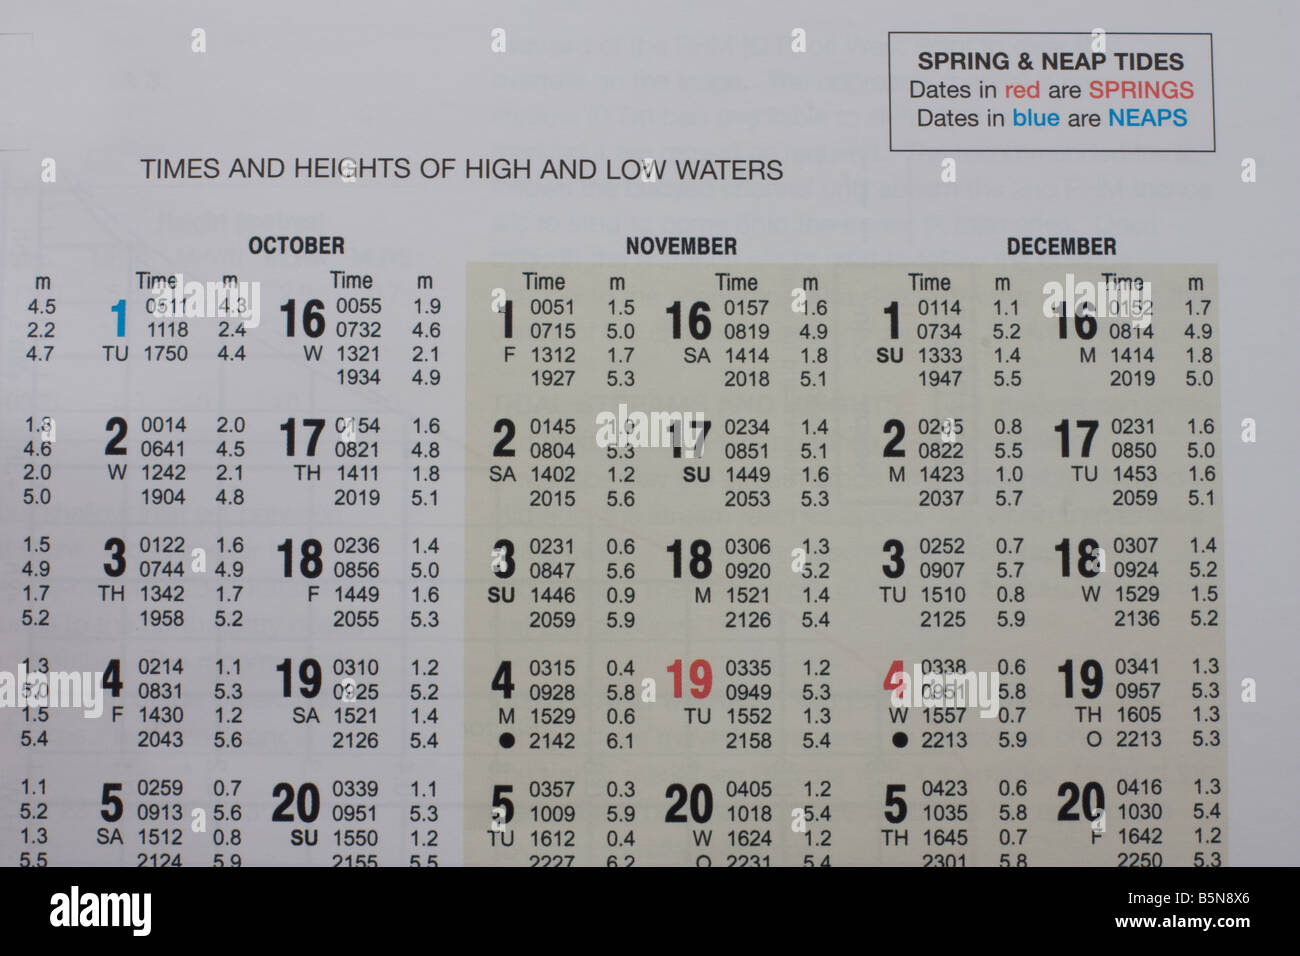 Tide Timetable Extract, OCT/NOV/DEC - Stock Image